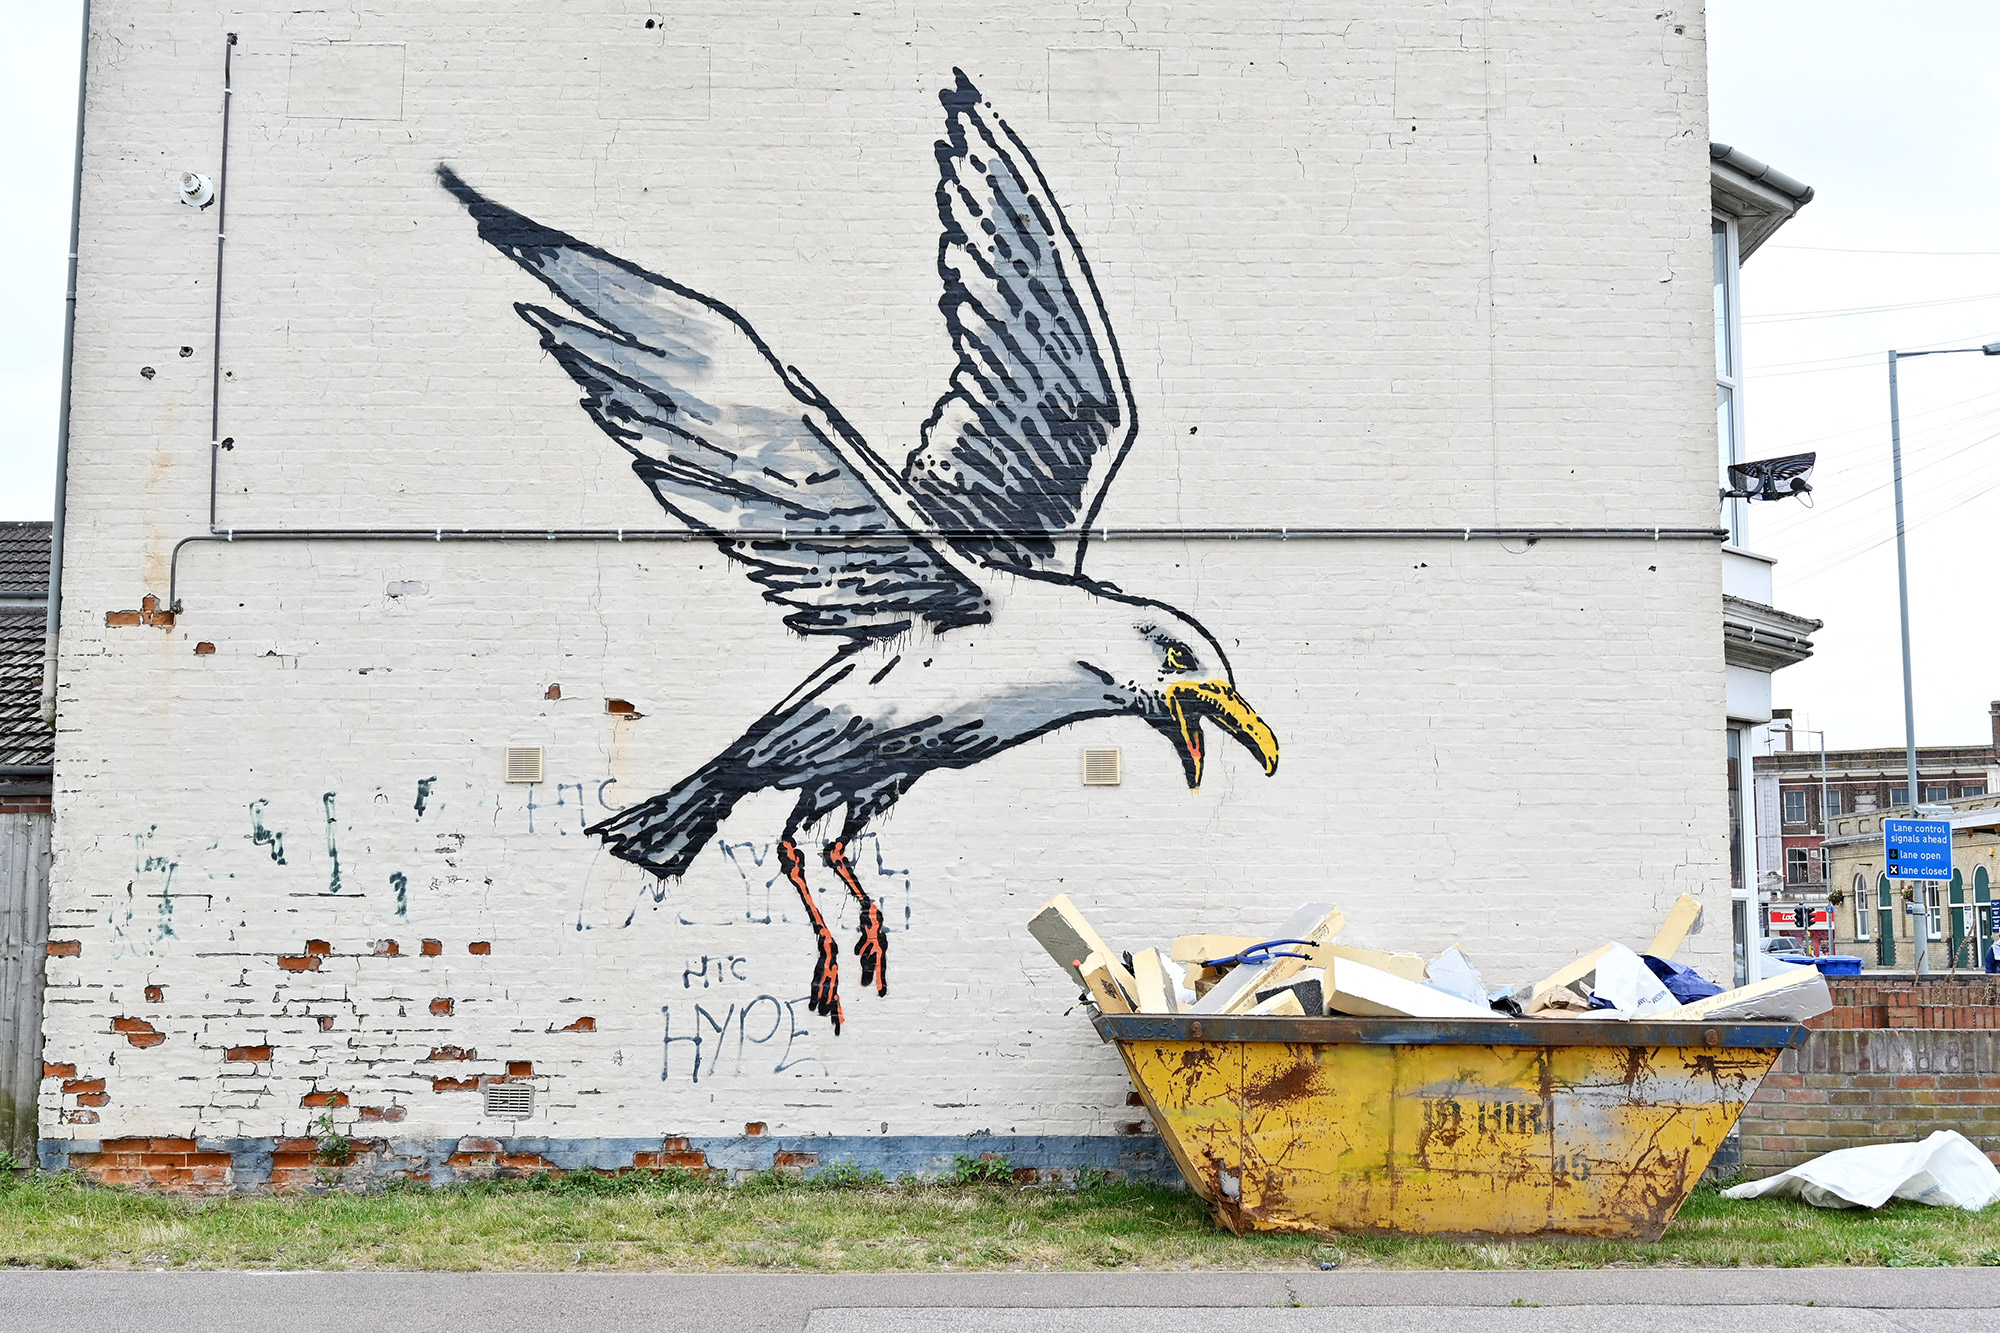 A stensil of a gull about to swoop down onto a carton of chips is the subject of a graffiti artwork bearing the hallmarks of street artist Banksy on a wall in Lowestoft on the East coast of England on August 8, 2021.